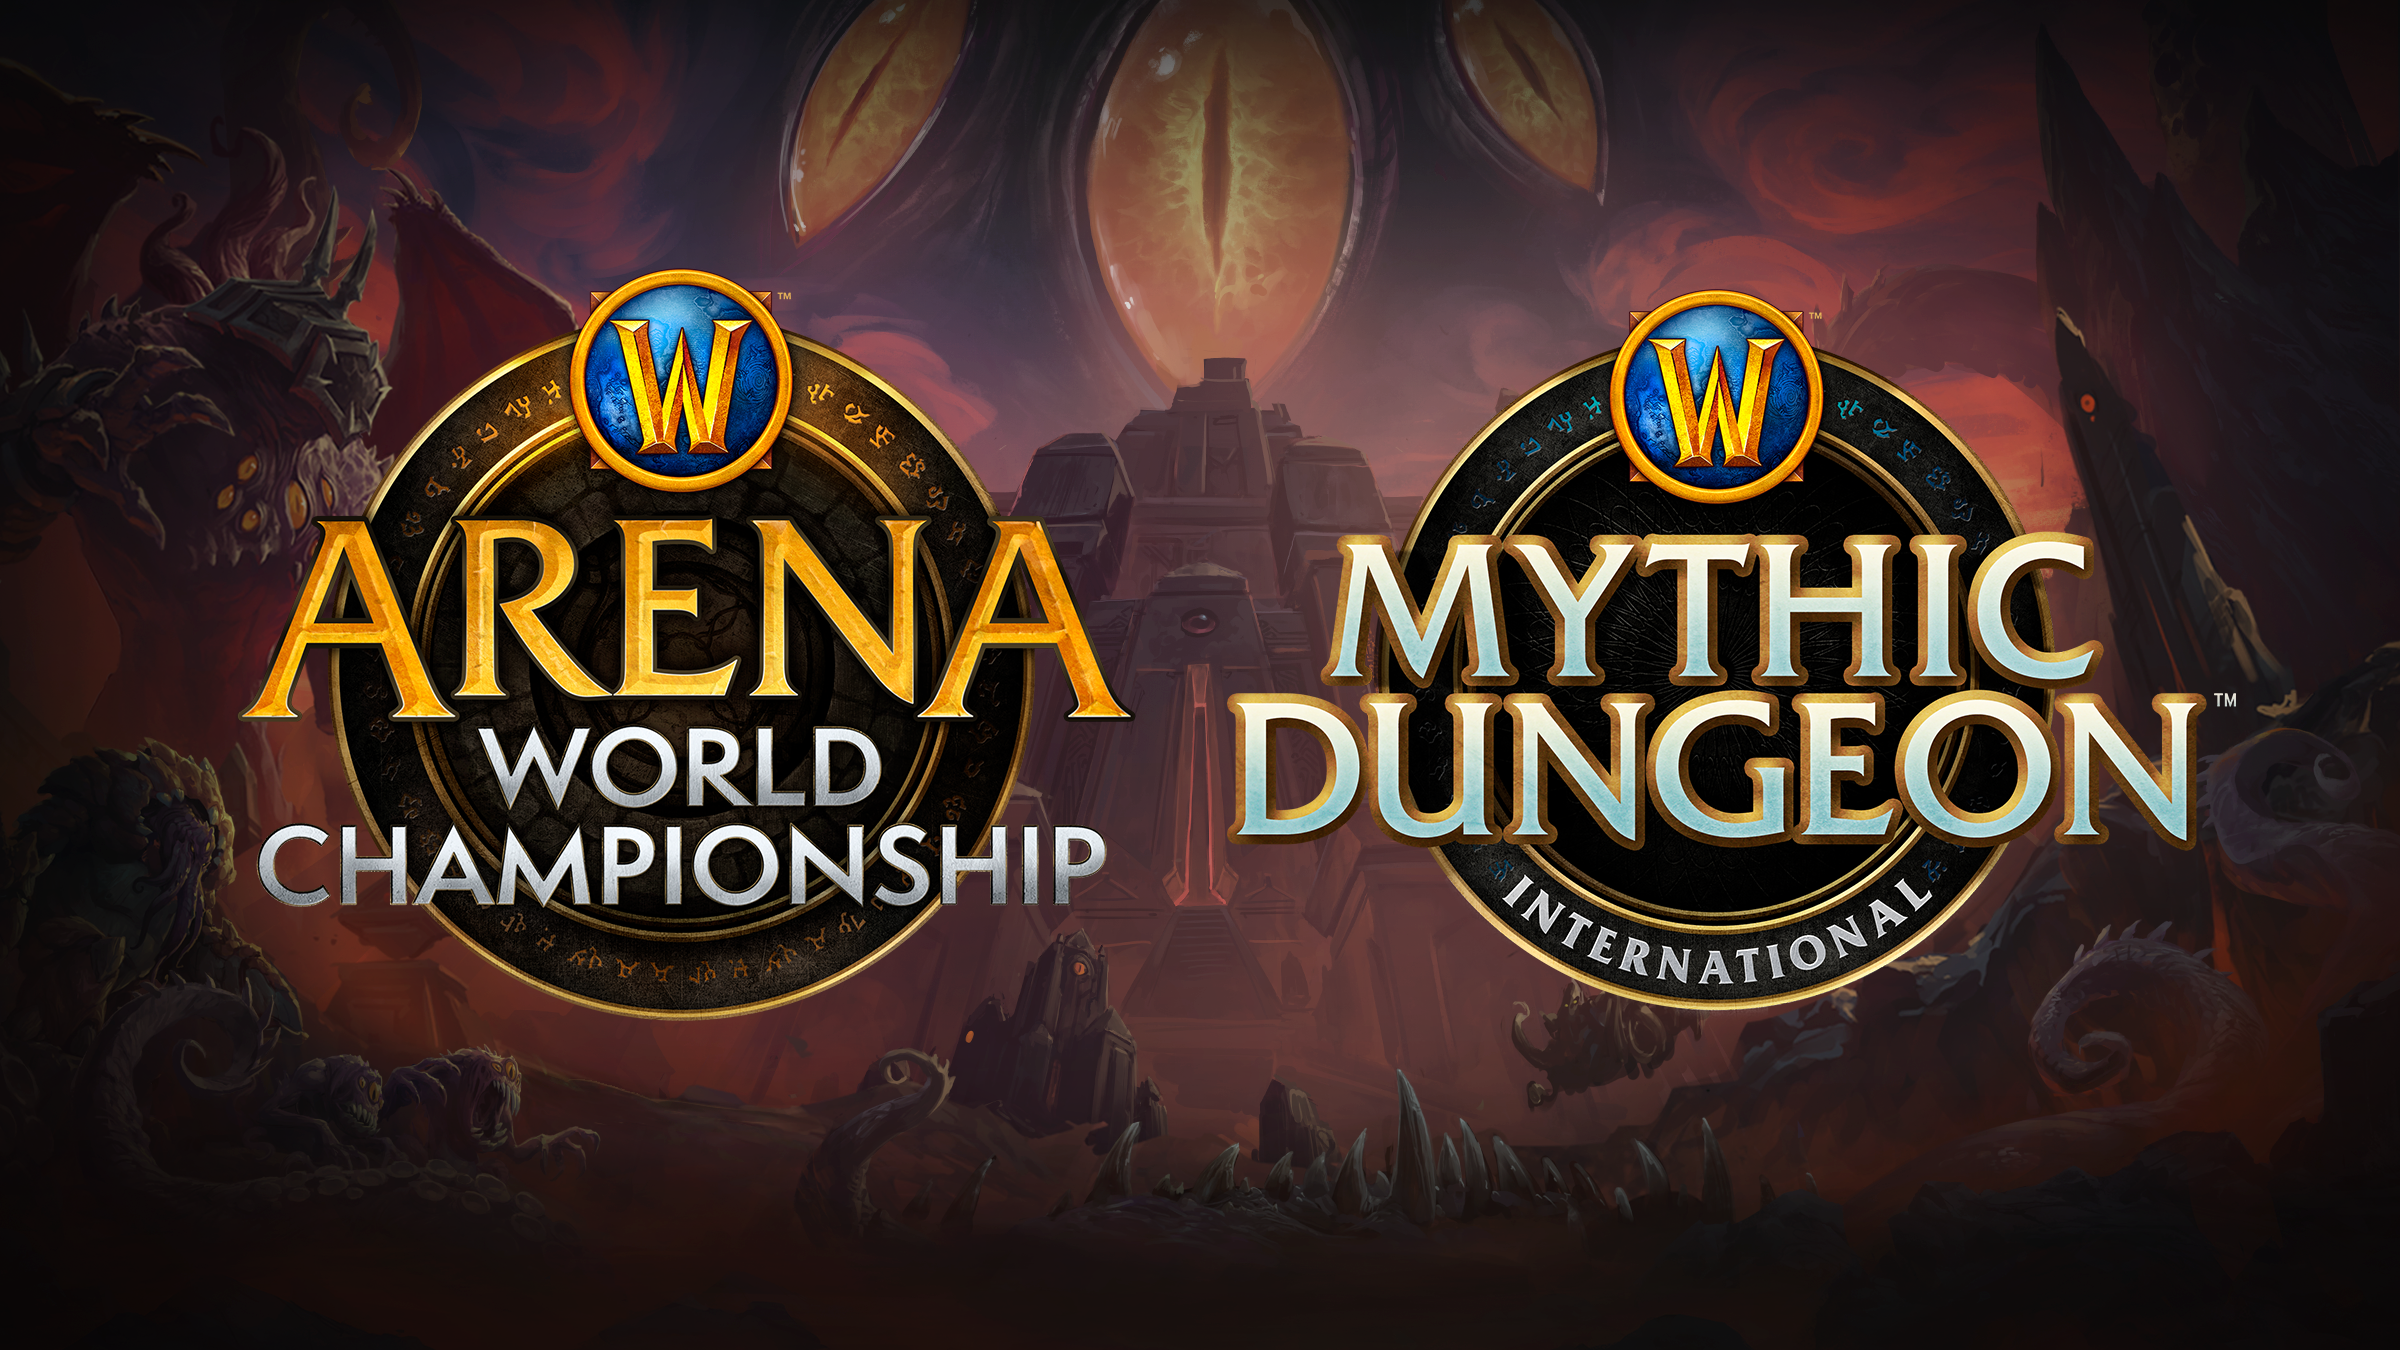 Planes para el Arena World Championship y el Mythic Dungeon International de 2020